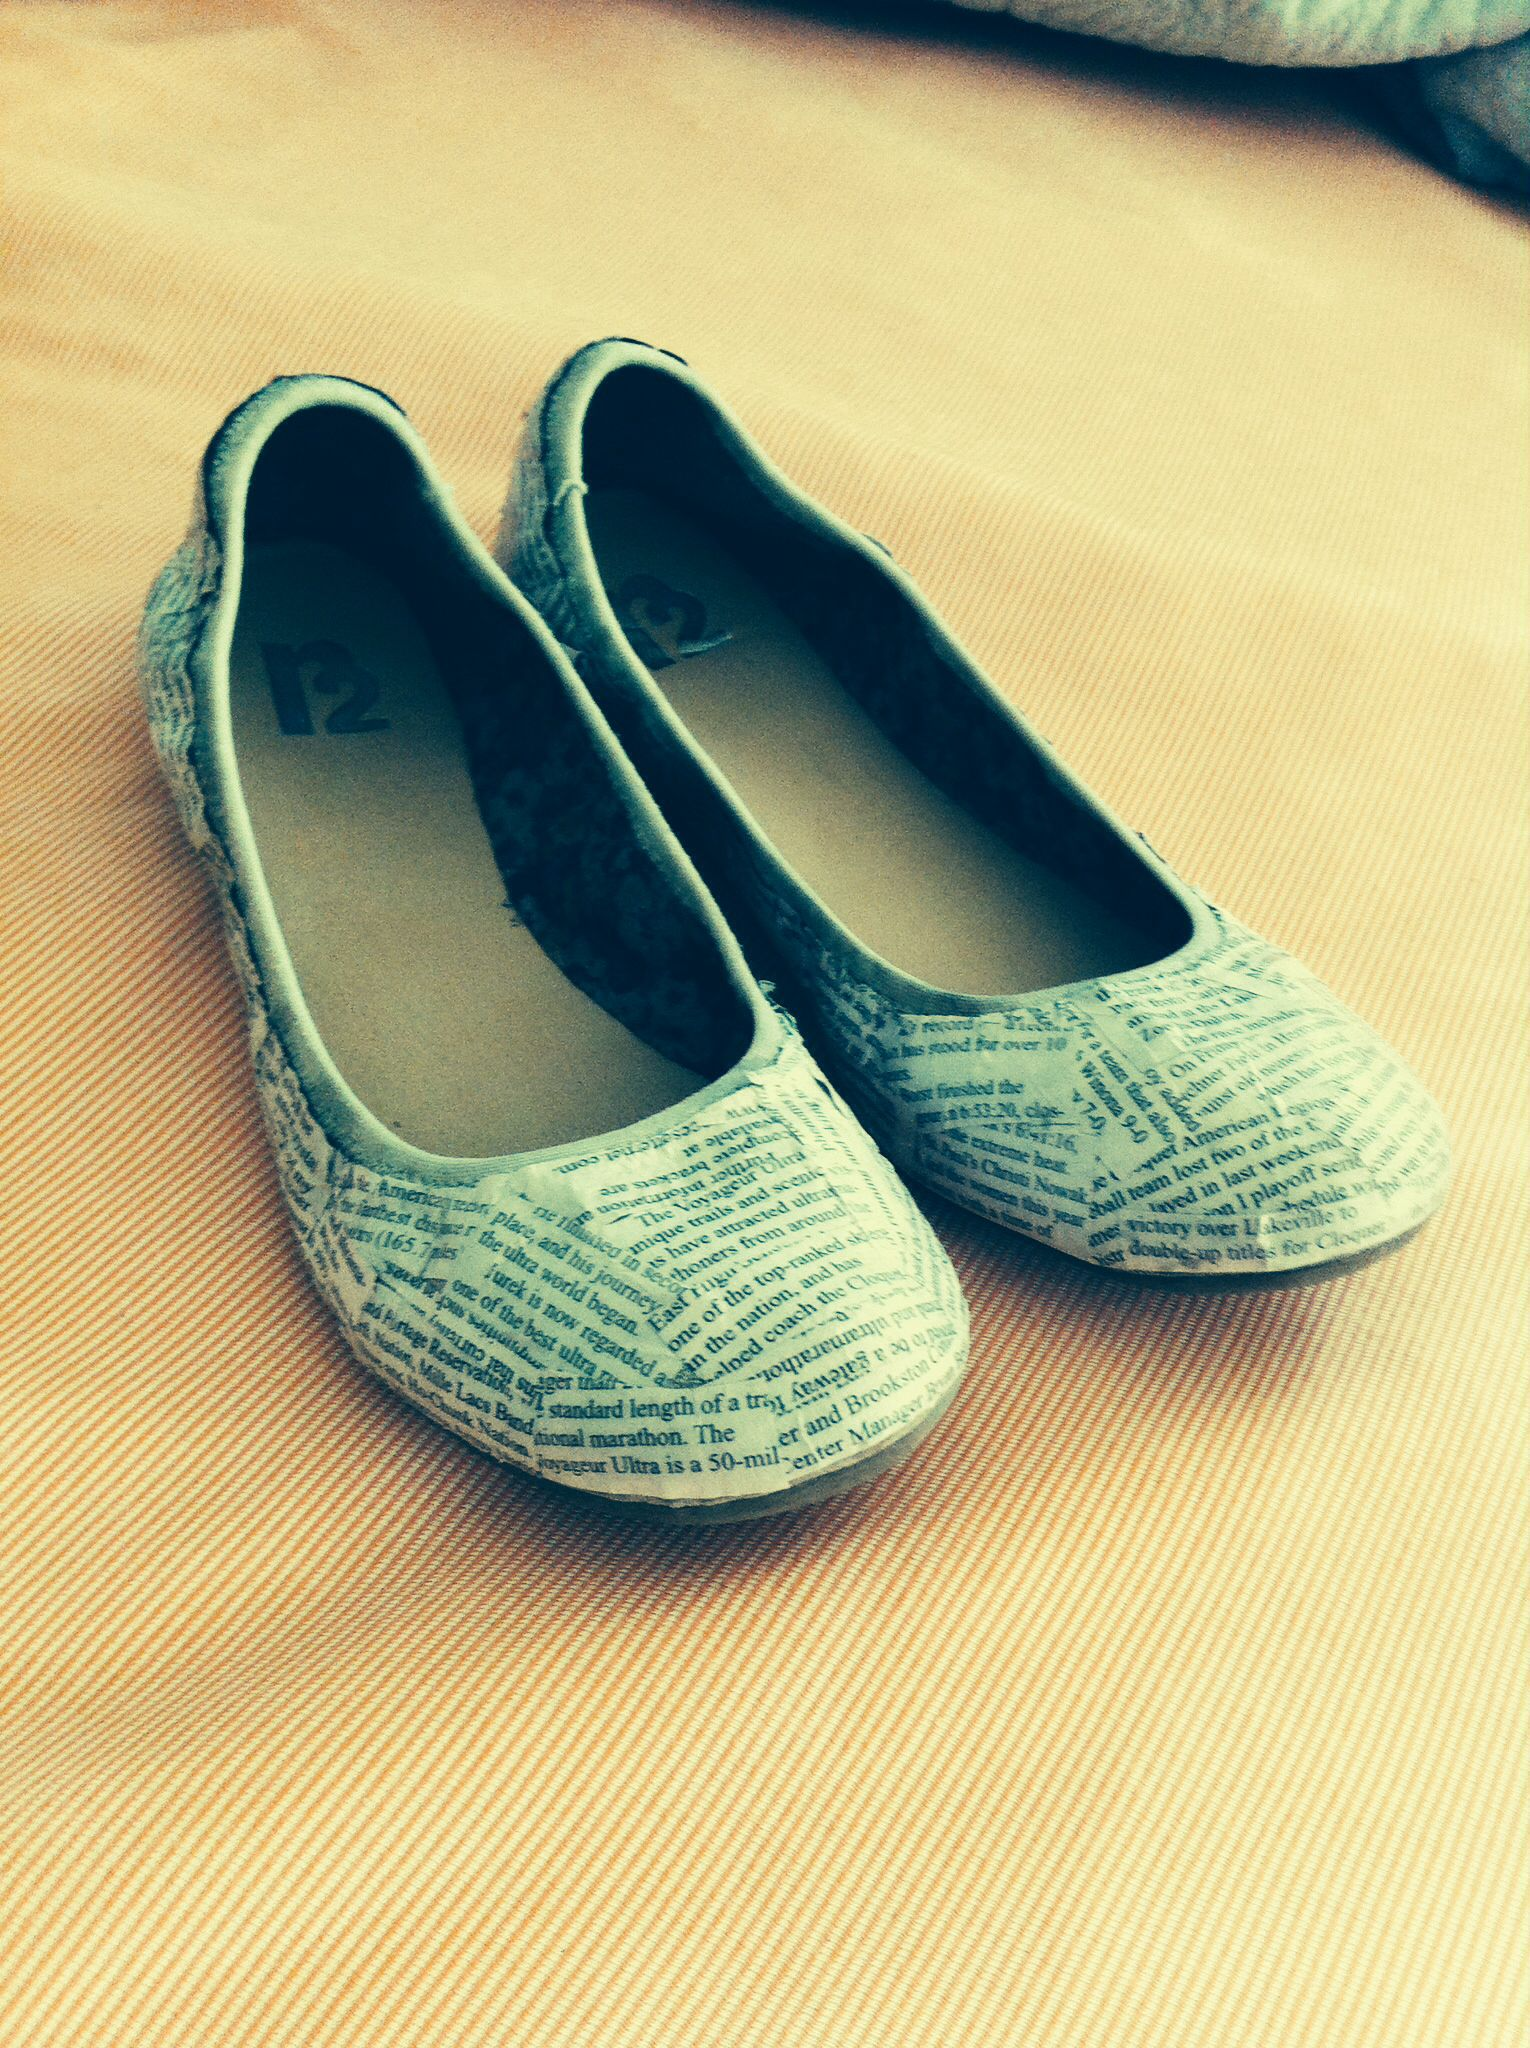 Saw this on Pinterest and decided to try it out.  Simply cover an old pair of flats using modge podge.  Super easy and super cute!